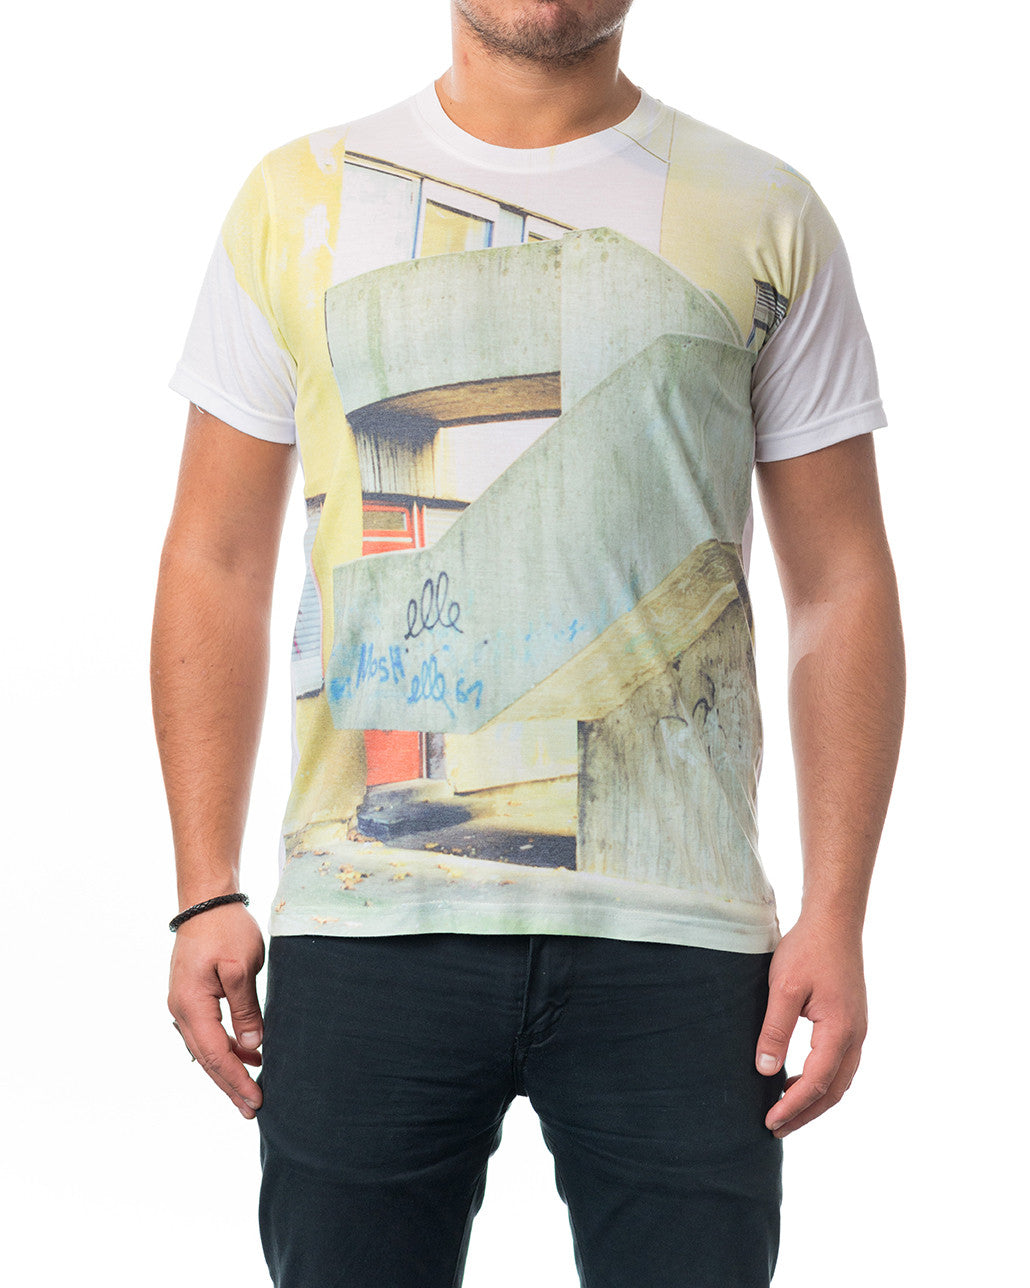 Favela Chic T-shirt